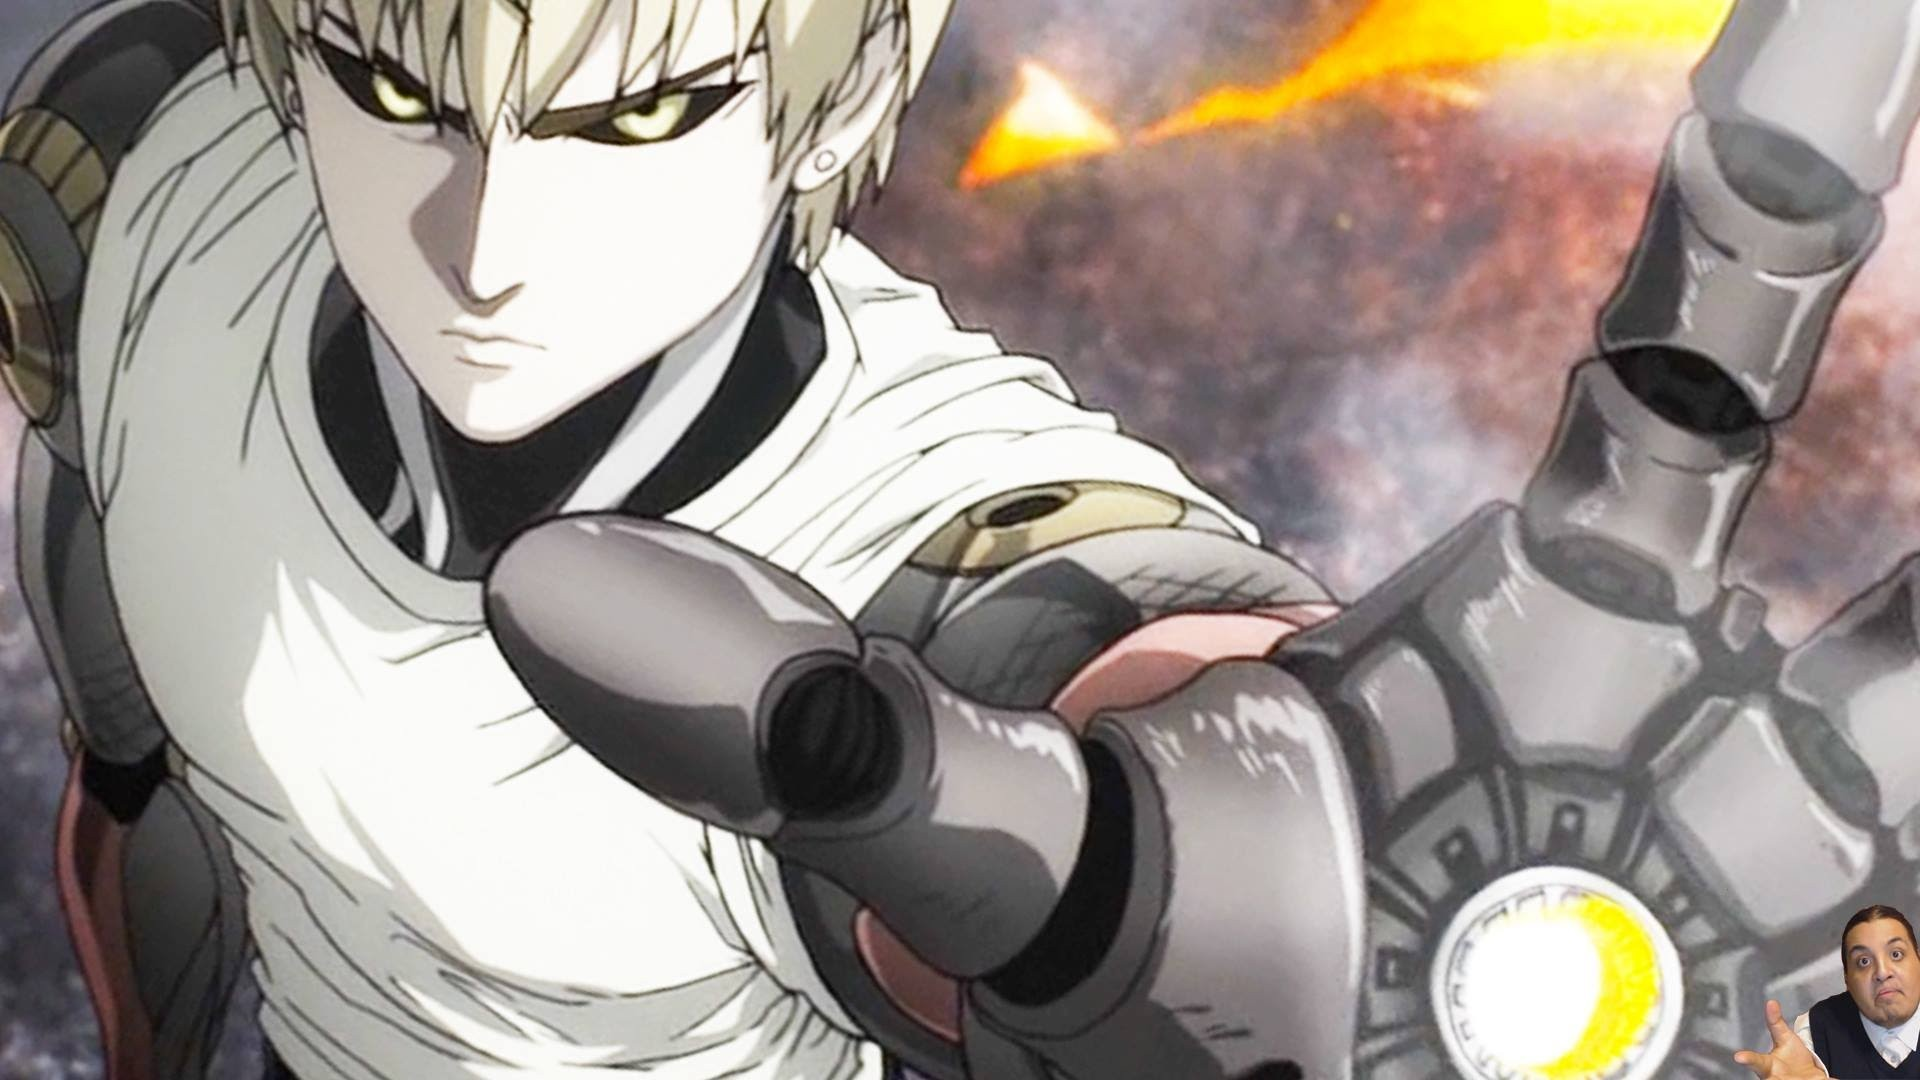 Good Wallpaper Android One Punch Man - 112374-vertical-one-punch-man-genos-wallpaper-1920x1080-for-android  Best Photo Reference_6389      .jpg